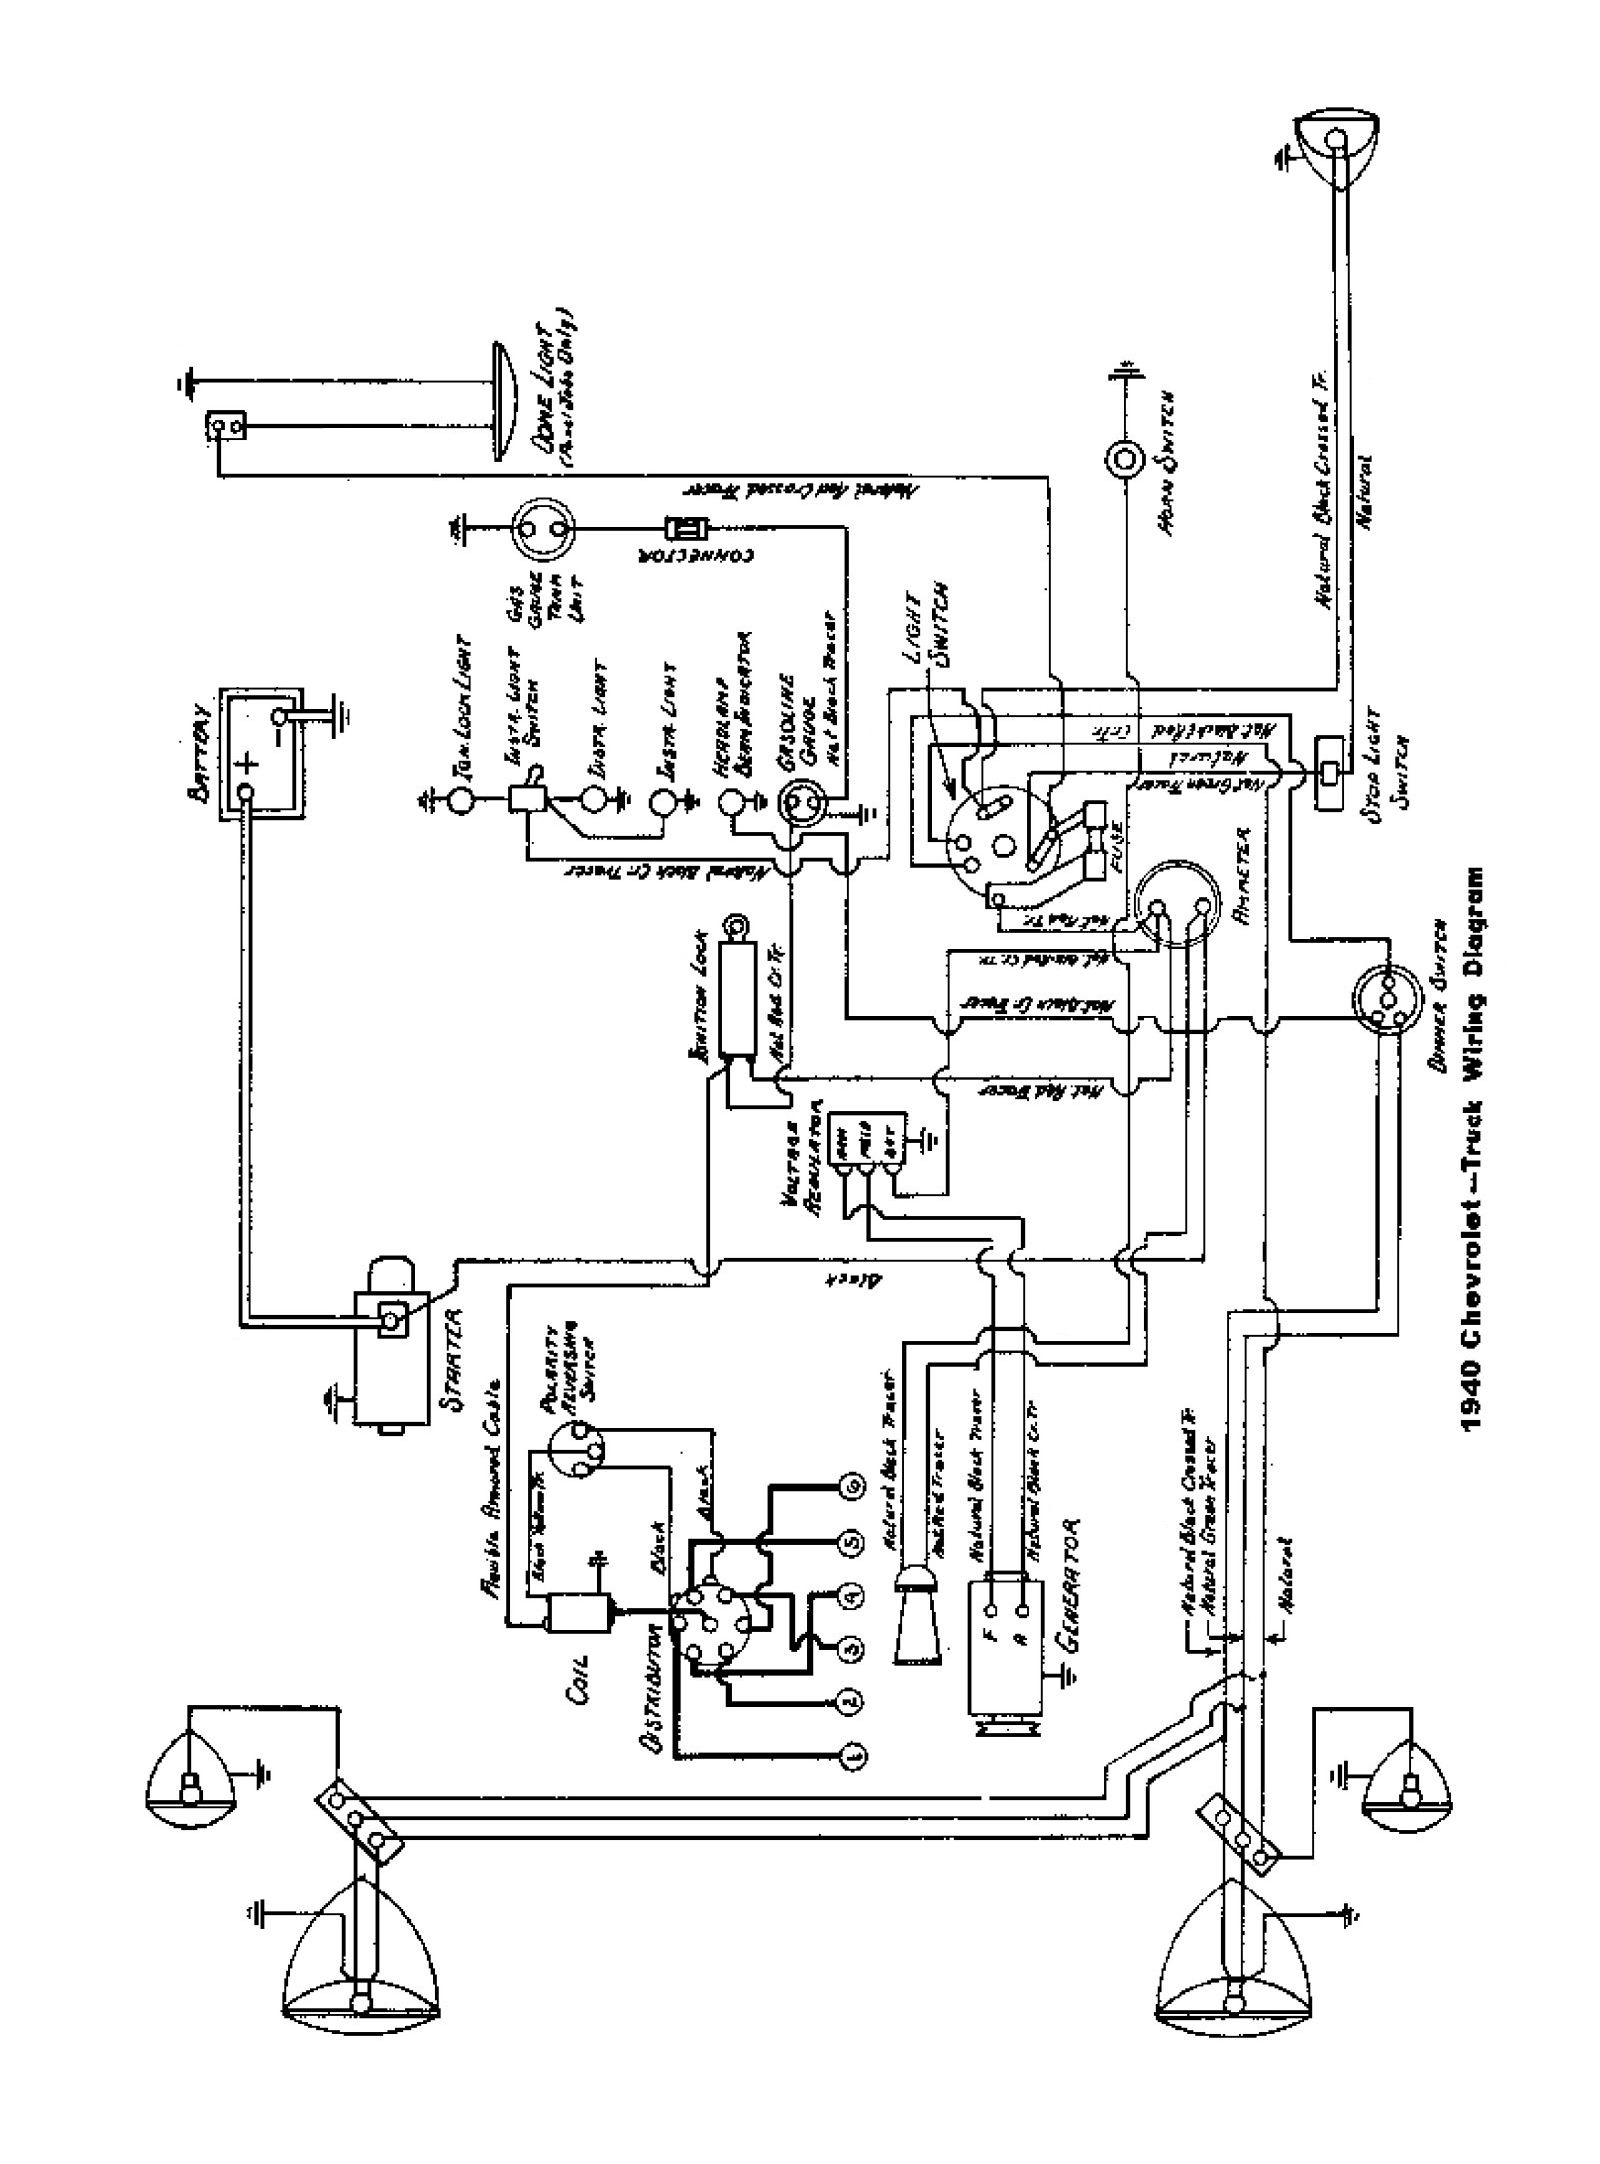 [DIAGRAM_3US]  BS_2296] 1958 Chevy Apache Truck On 1958 Chevy Apache Truck Wiring Diagram  Download Diagram   Apache Wiring Diagram      Coun Mentra Mohammedshrine Librar Wiring 101